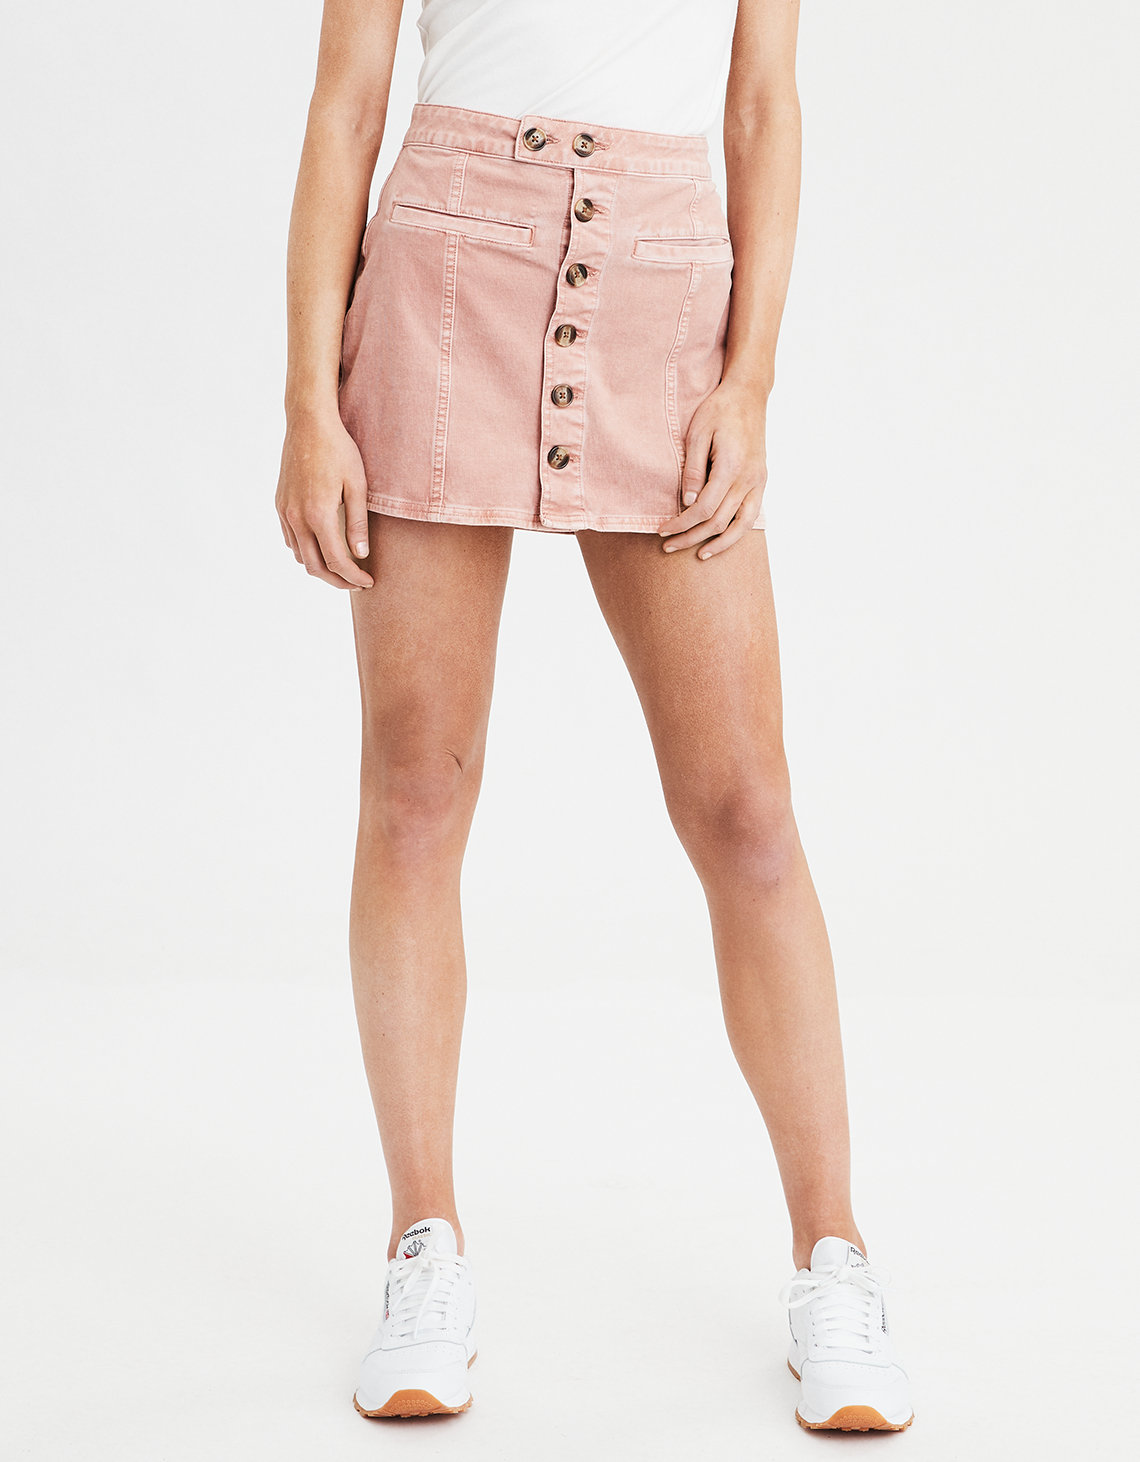 aa016baa510 AE High-Waisted A-Line Corduroy Skirt